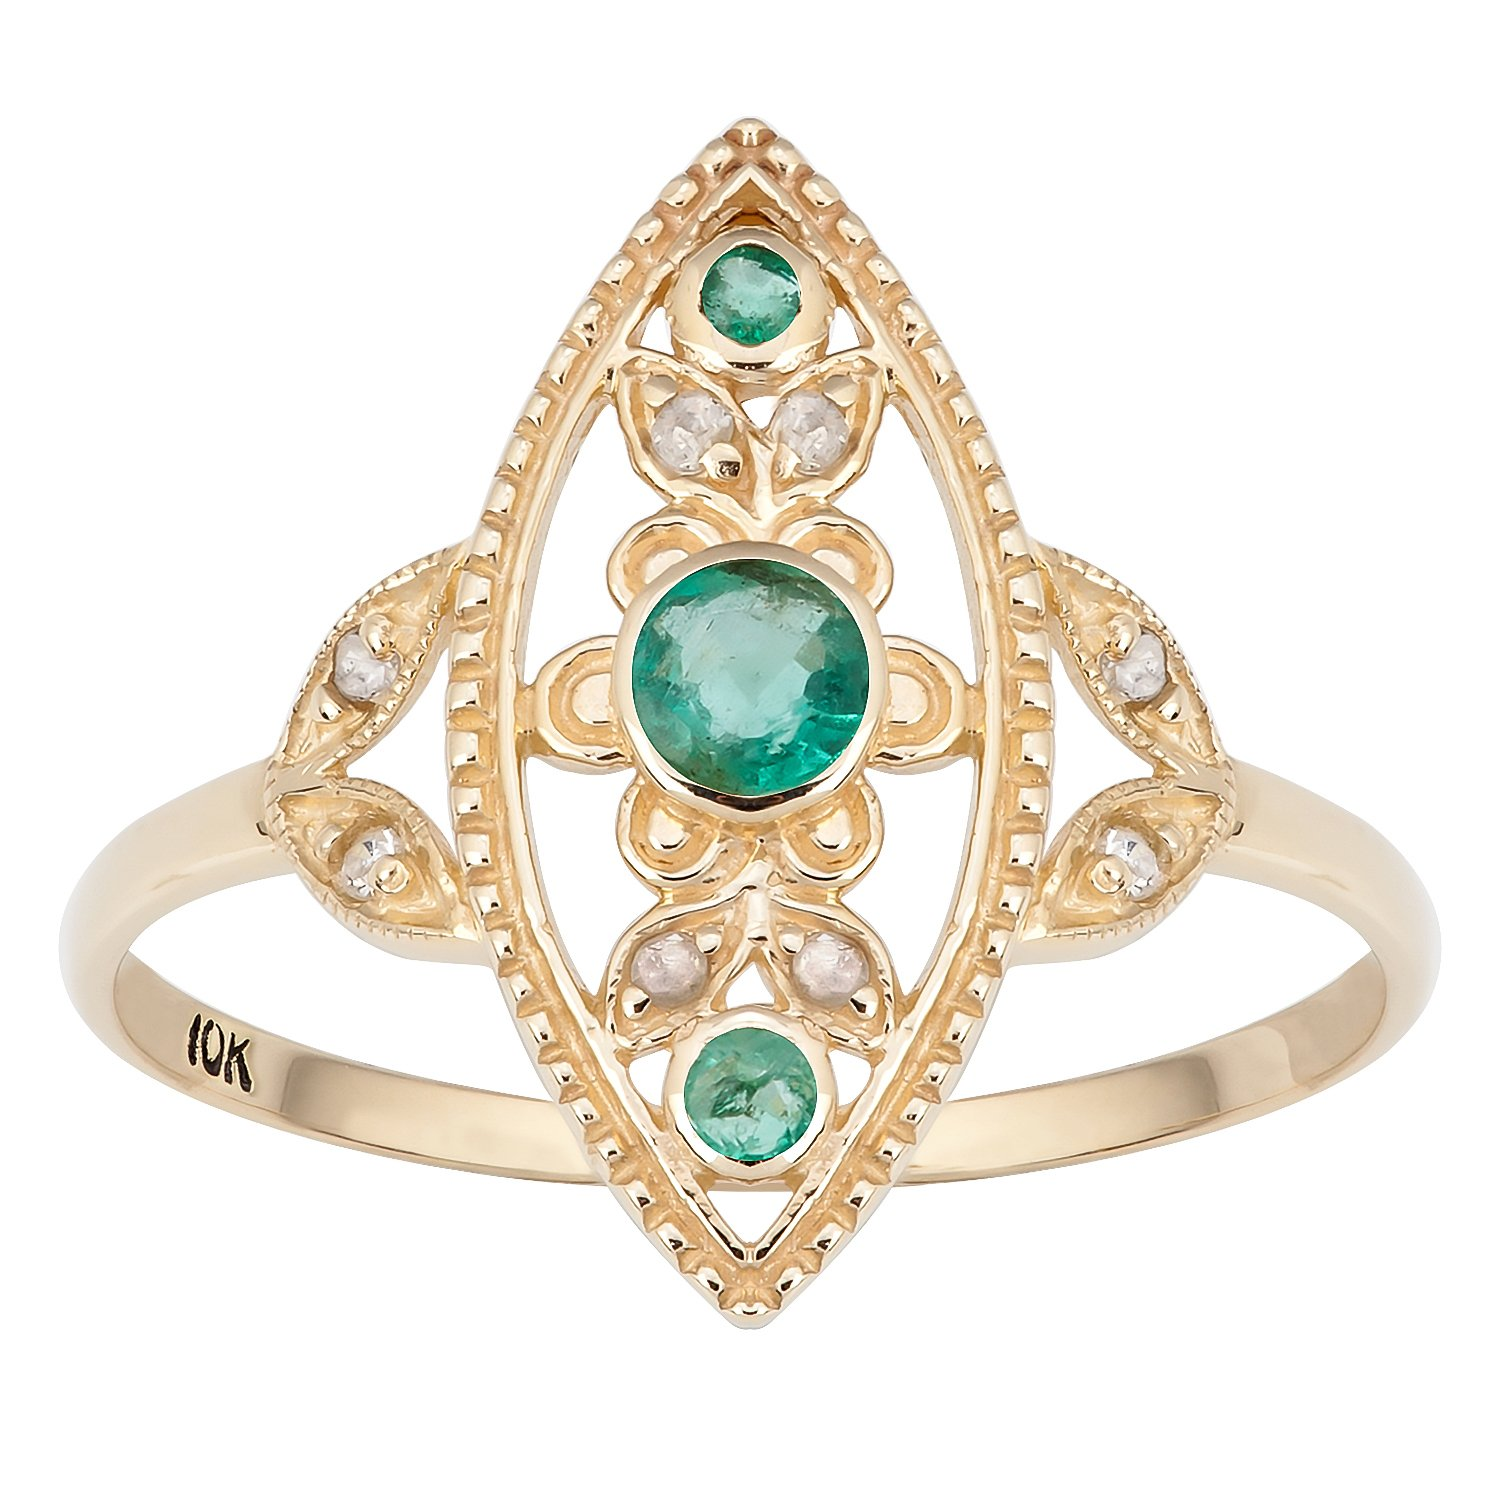 10k Yellow Gold Antique Style Genuine Round Emerald and Diamond Ring by Instagems